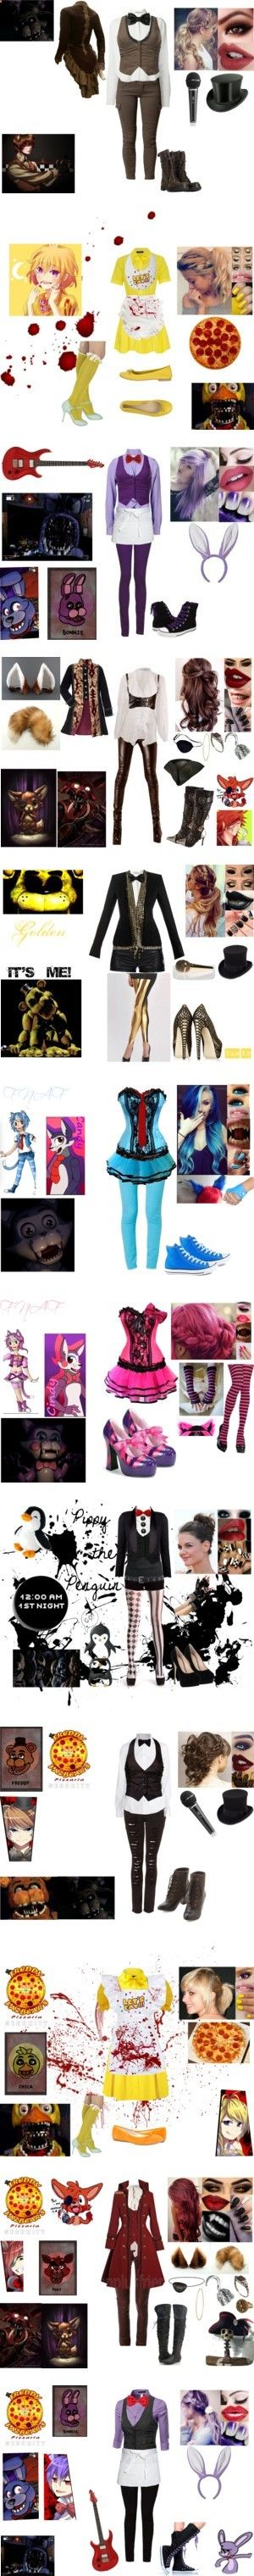 FNAF Sets by nicoleoliviaberry on Polyvore featuring Savannah, T By Alexander Wang, J.TOMSON, Freddy, AllSaints, CABARET, MaxMara, Helen, Anna Sui and Monkee Genes